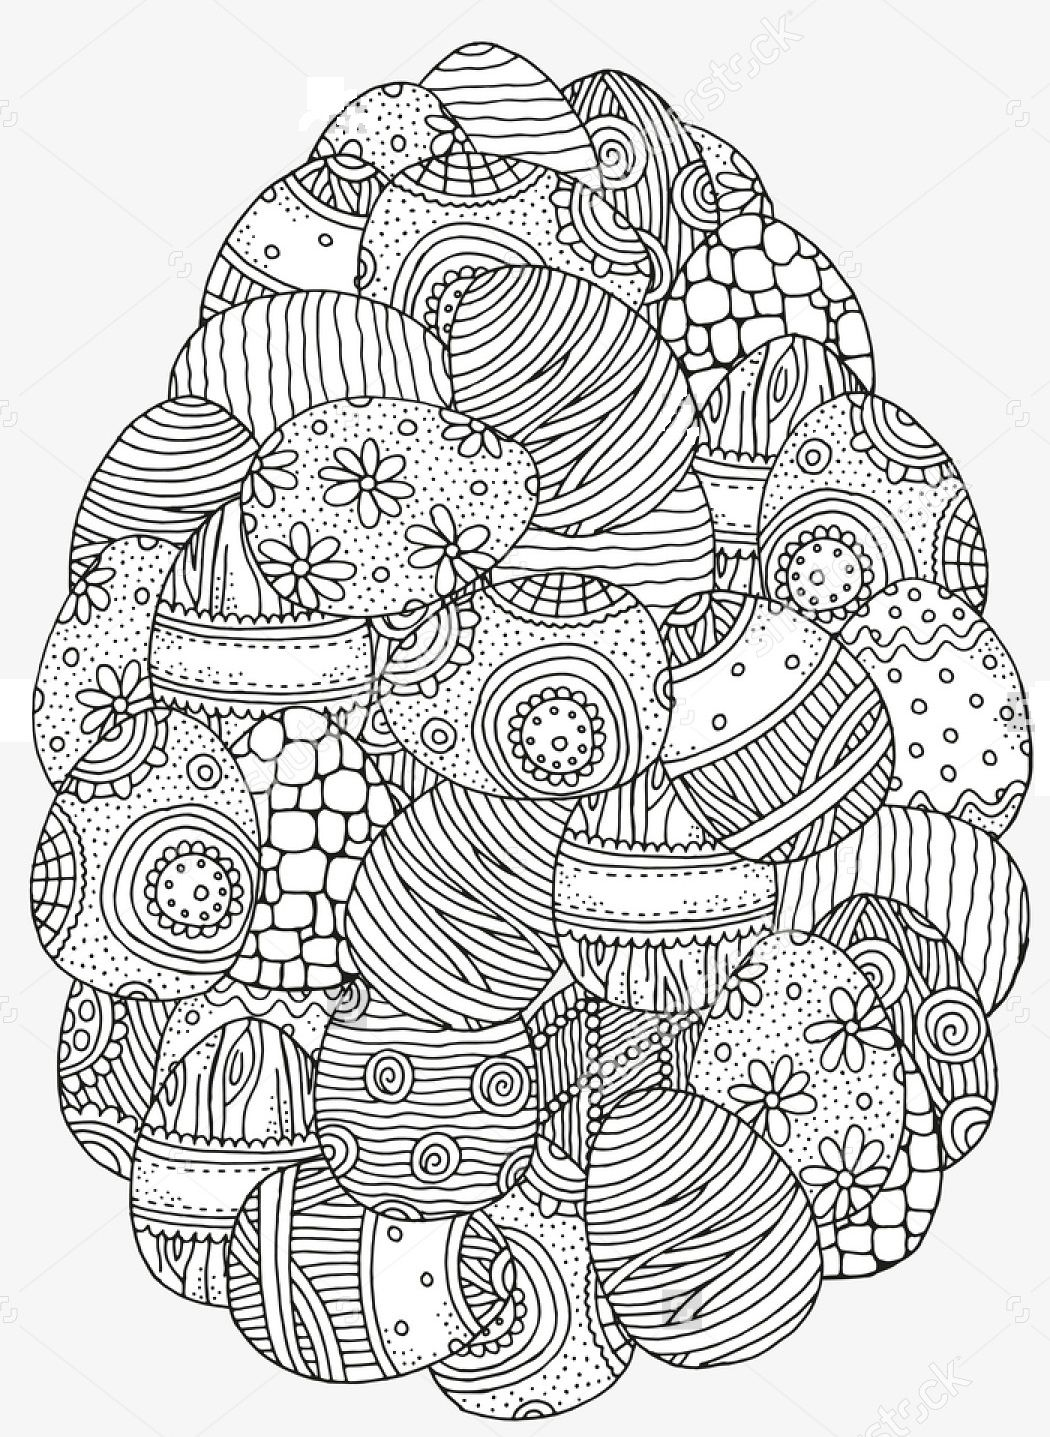 Pin By Bieke Adams On Easter Easter Egg Coloring Pages Easter Coloring Pages Mandala Coloring Pages